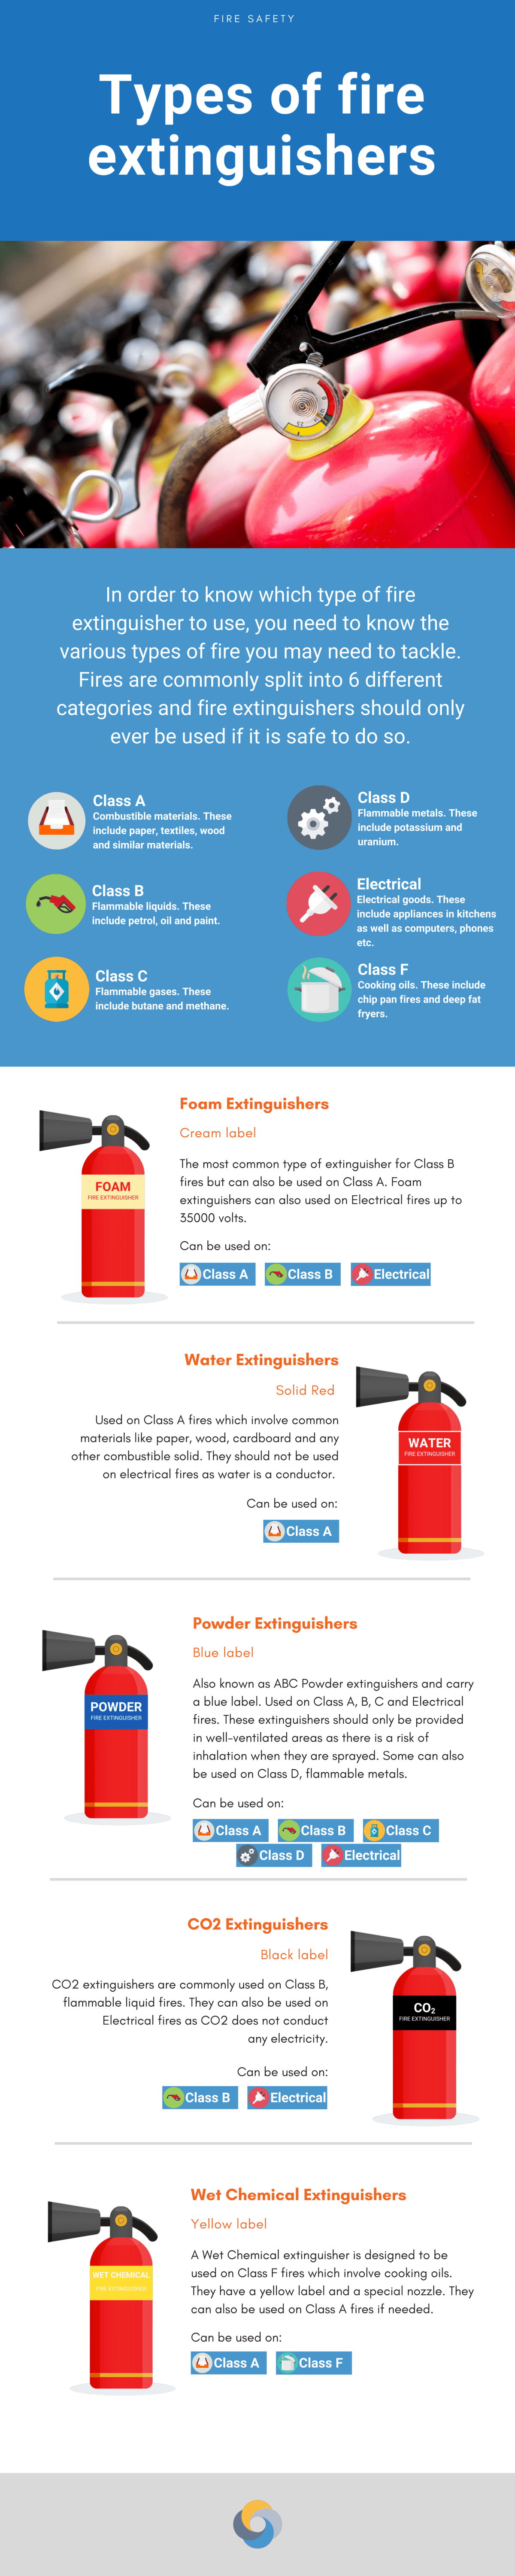 Types of fire extinguisher